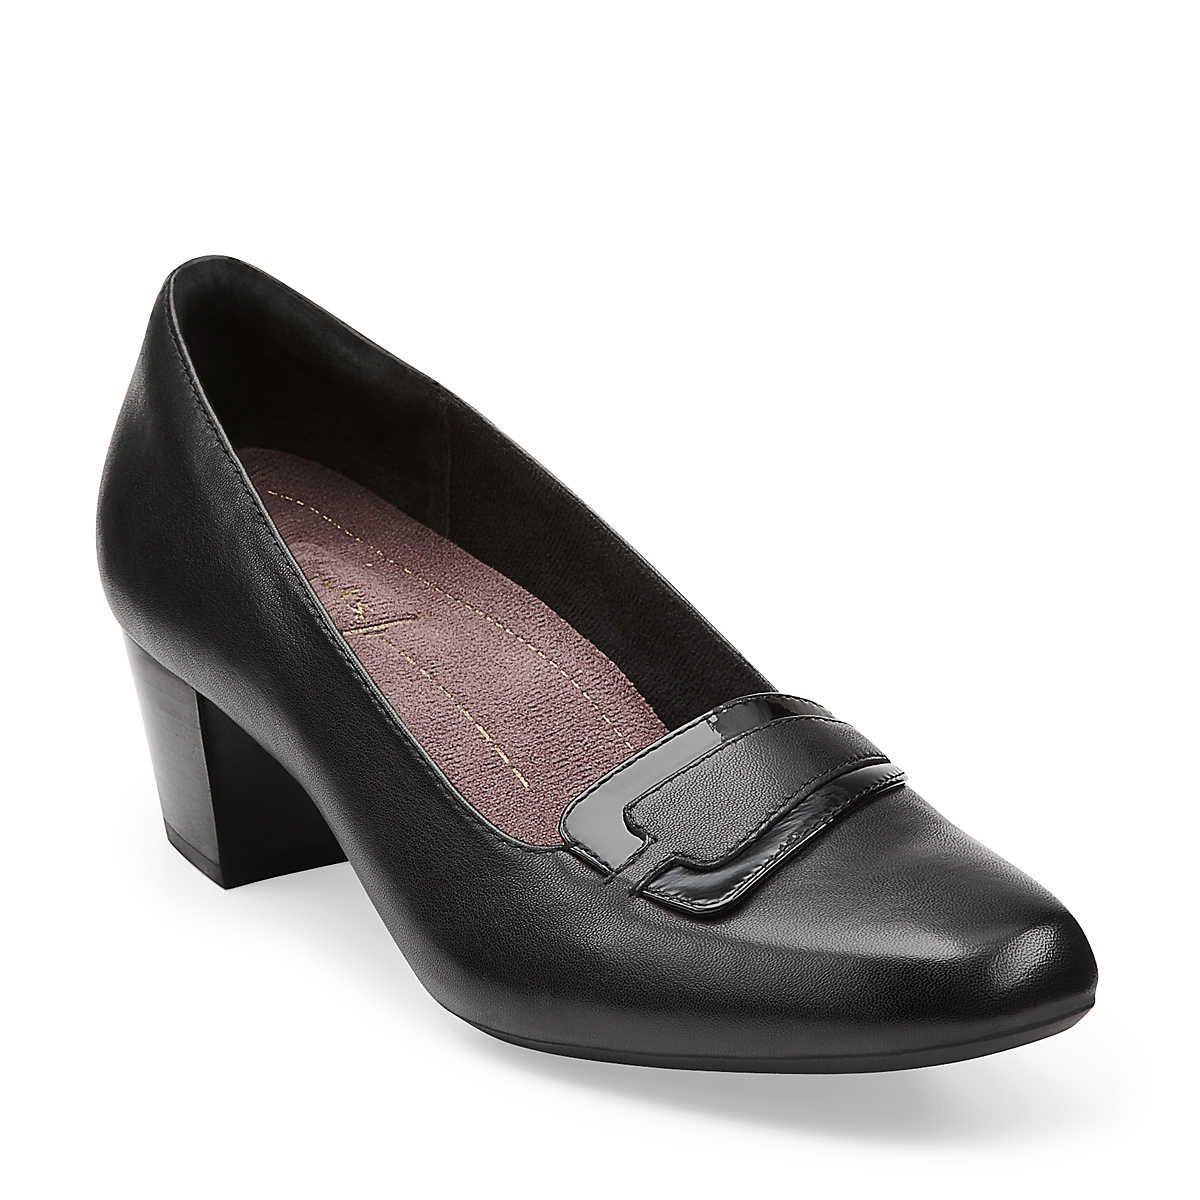 Levee Delta in Black Leather - Womens Shoes from Clarks